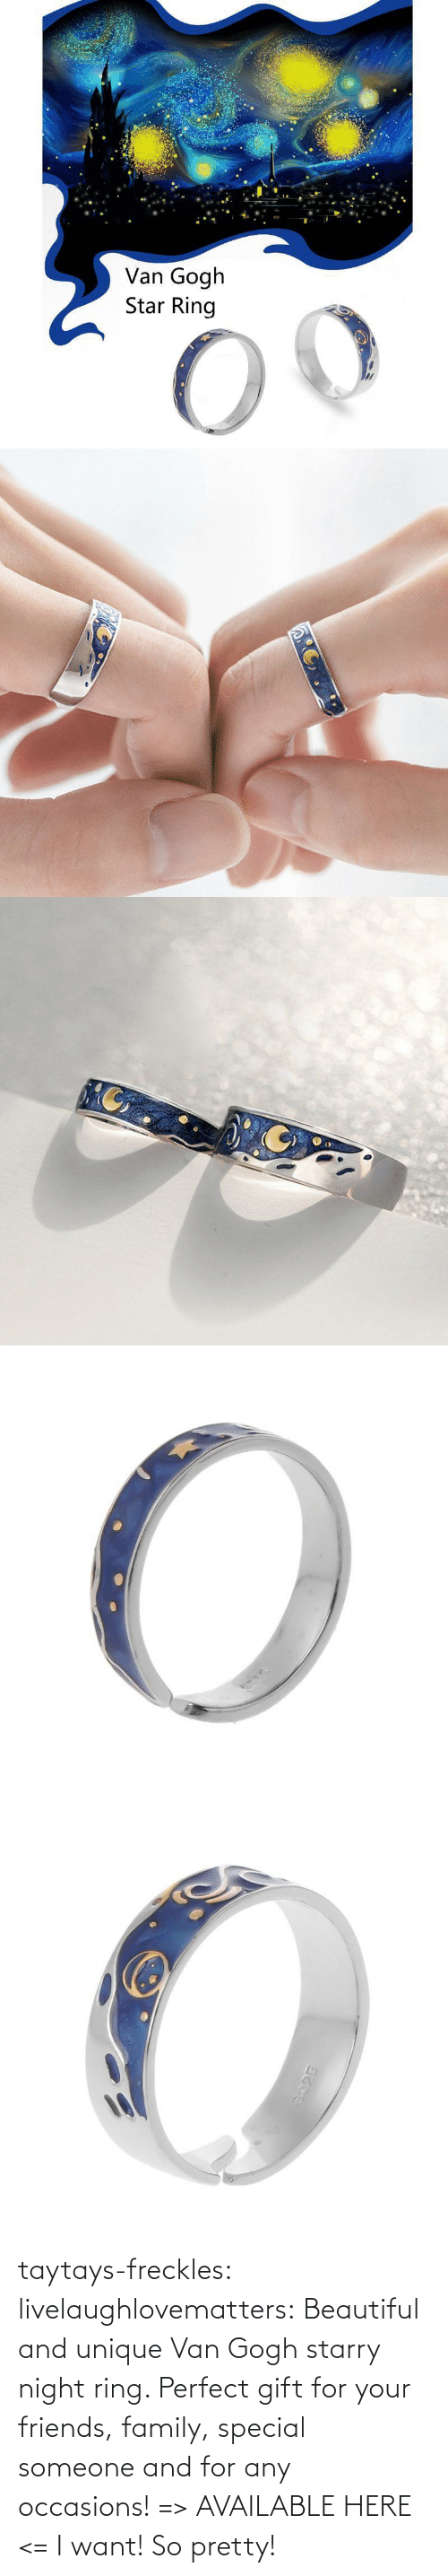 night: taytays-freckles: livelaughlovematters:  Beautiful and unique Van Gogh starry night ring. Perfect gift for your friends, family, special someone and for any occasions! =>AVAILABLE HERE <=    I want! So pretty!